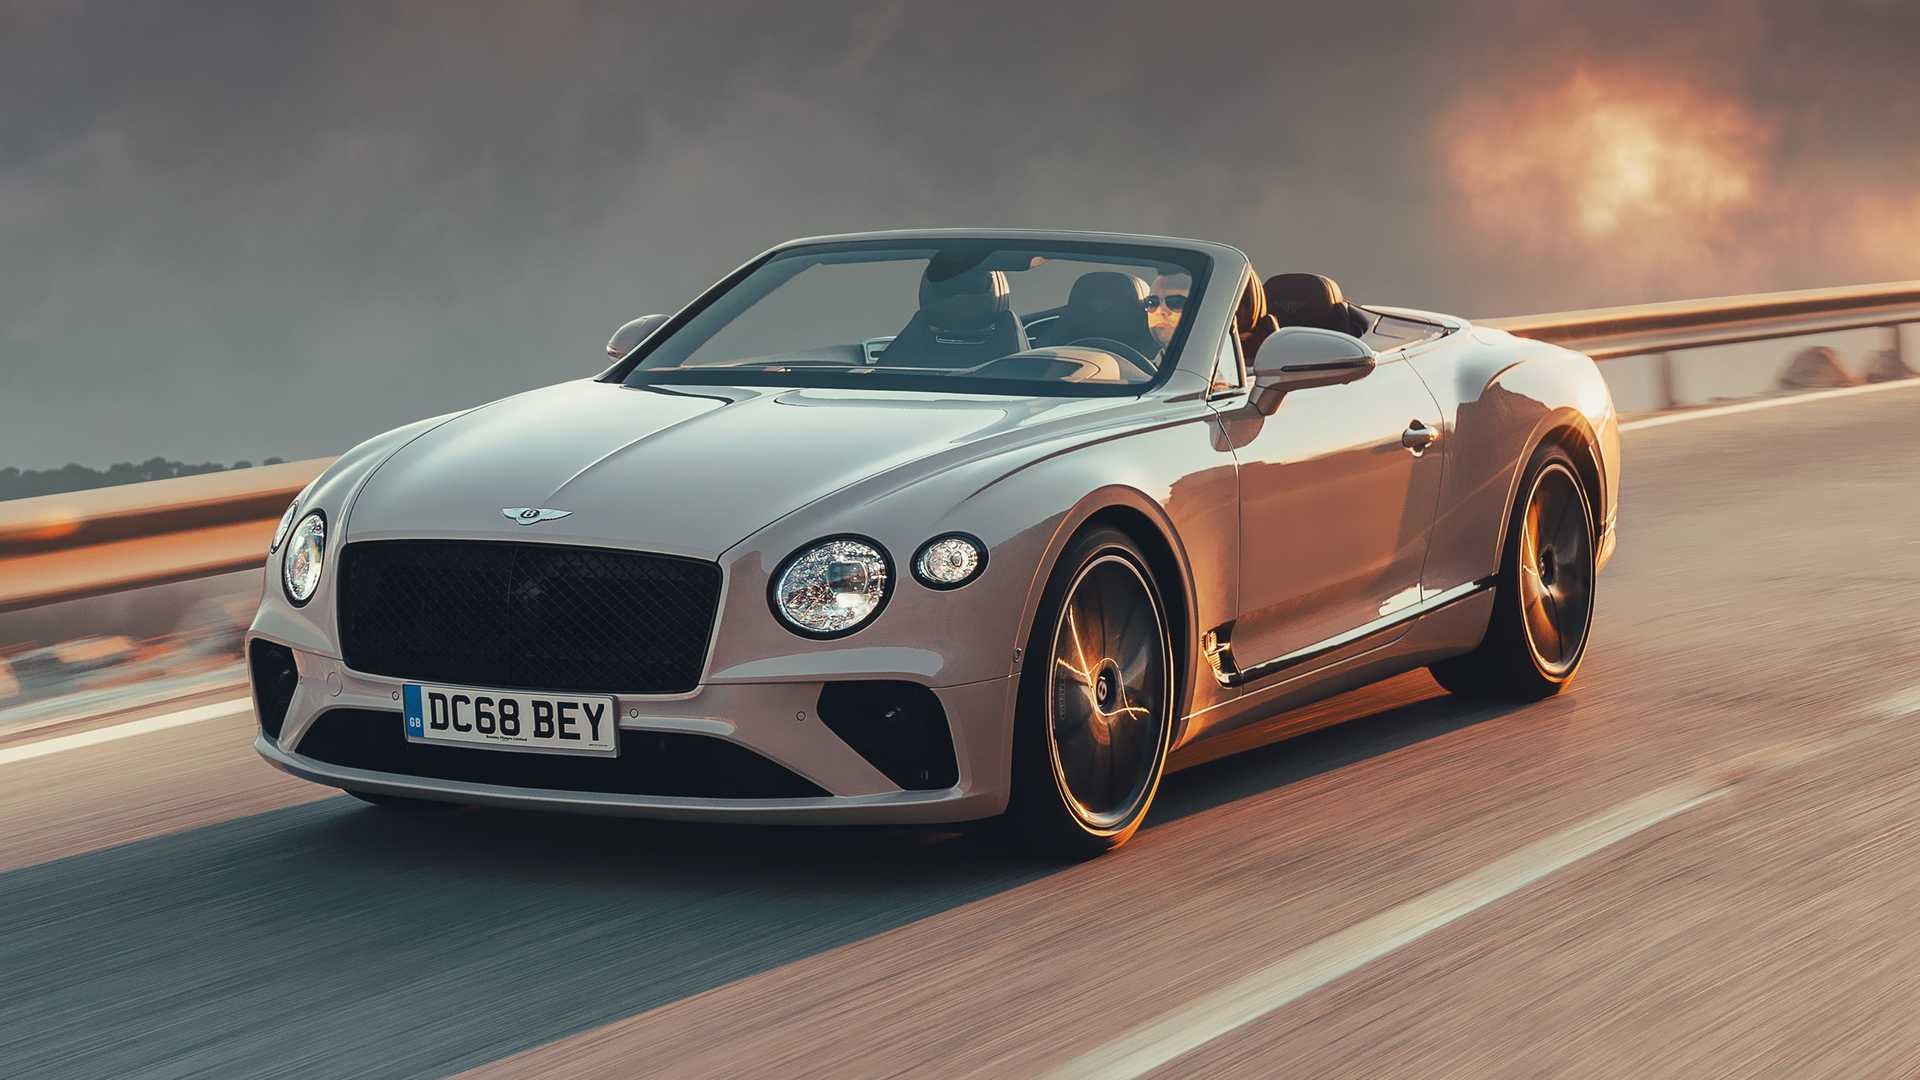 69 The 2020 Bentley Continental GT Style